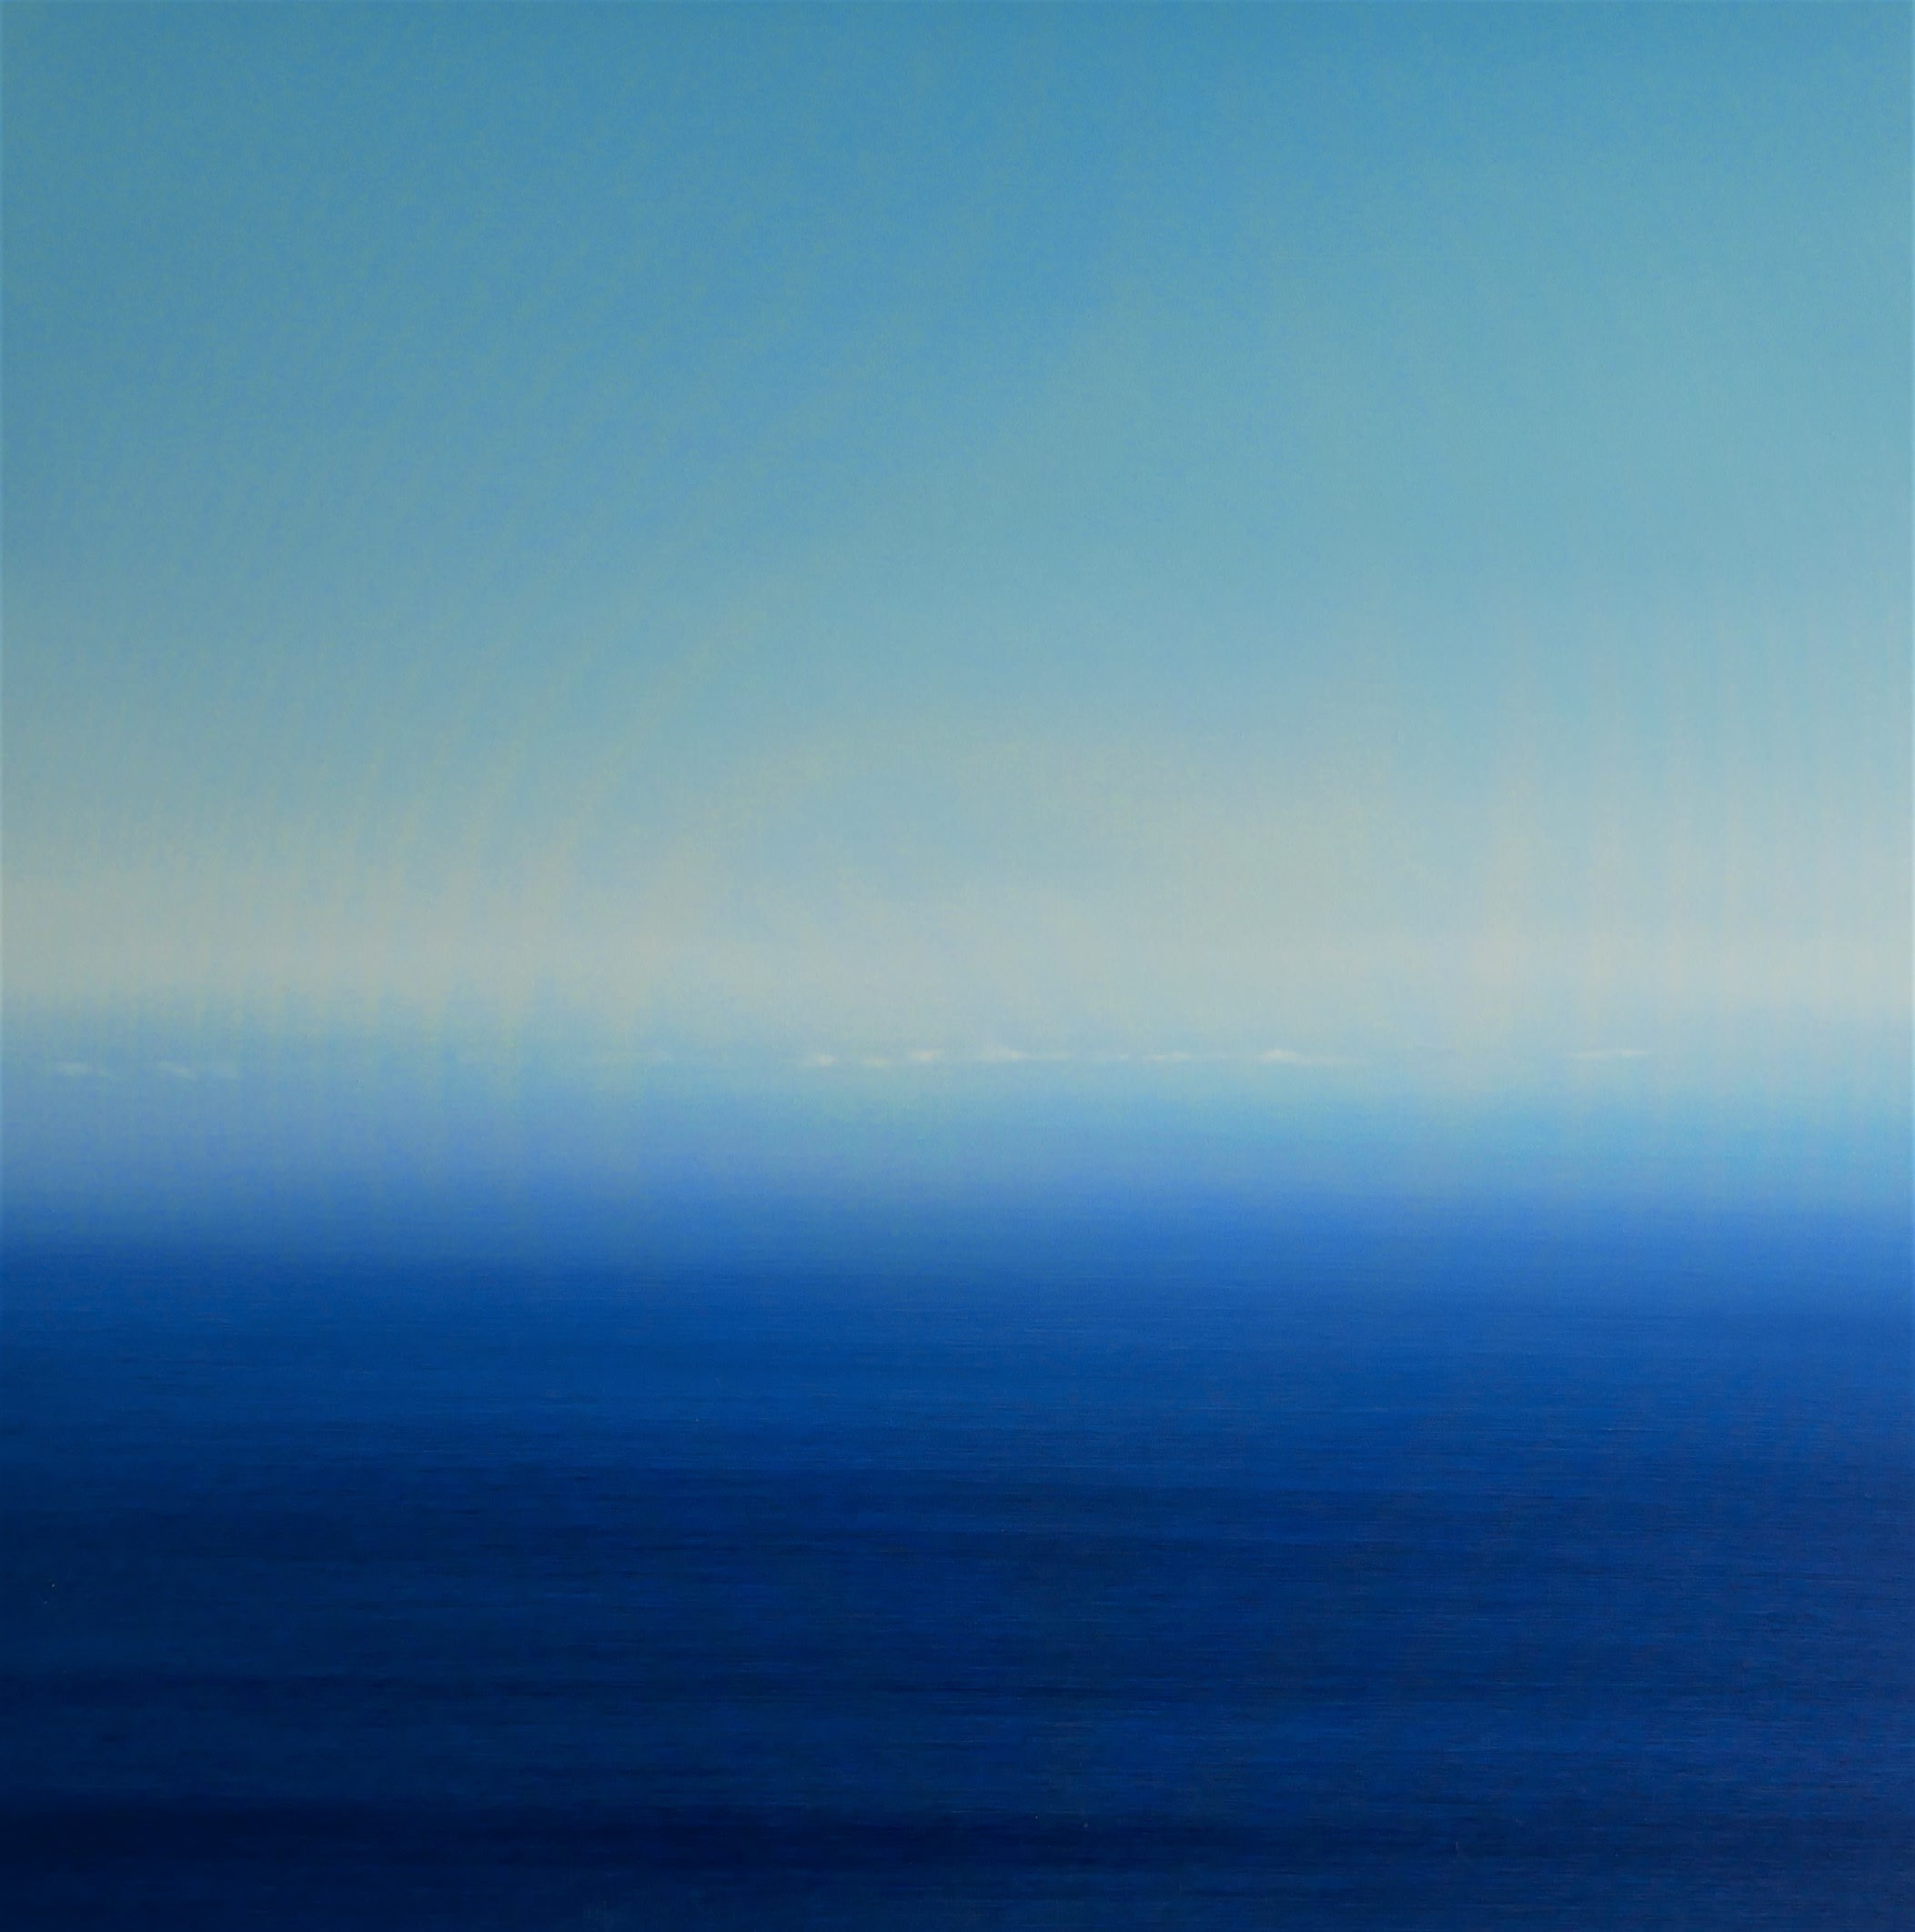 """<span class=""""link fancybox-details-link""""><a href=""""/artists/78-martyn-perryman/works/7375-martyn-perryman-summer-skies-st-ives-2020/"""">View Detail Page</a></span><div class=""""artist""""><strong>Martyn Perryman</strong></div> b. 1963 <div class=""""title""""><em>Summer Skies St Ives</em>, 2020</div> <div class=""""medium"""">oil on canvas</div> <div class=""""dimensions"""">h. 70 x w. 70 cm </div><div class=""""copyright_line"""">Ownart: £90 x 10 Months, 0% APR </div>"""